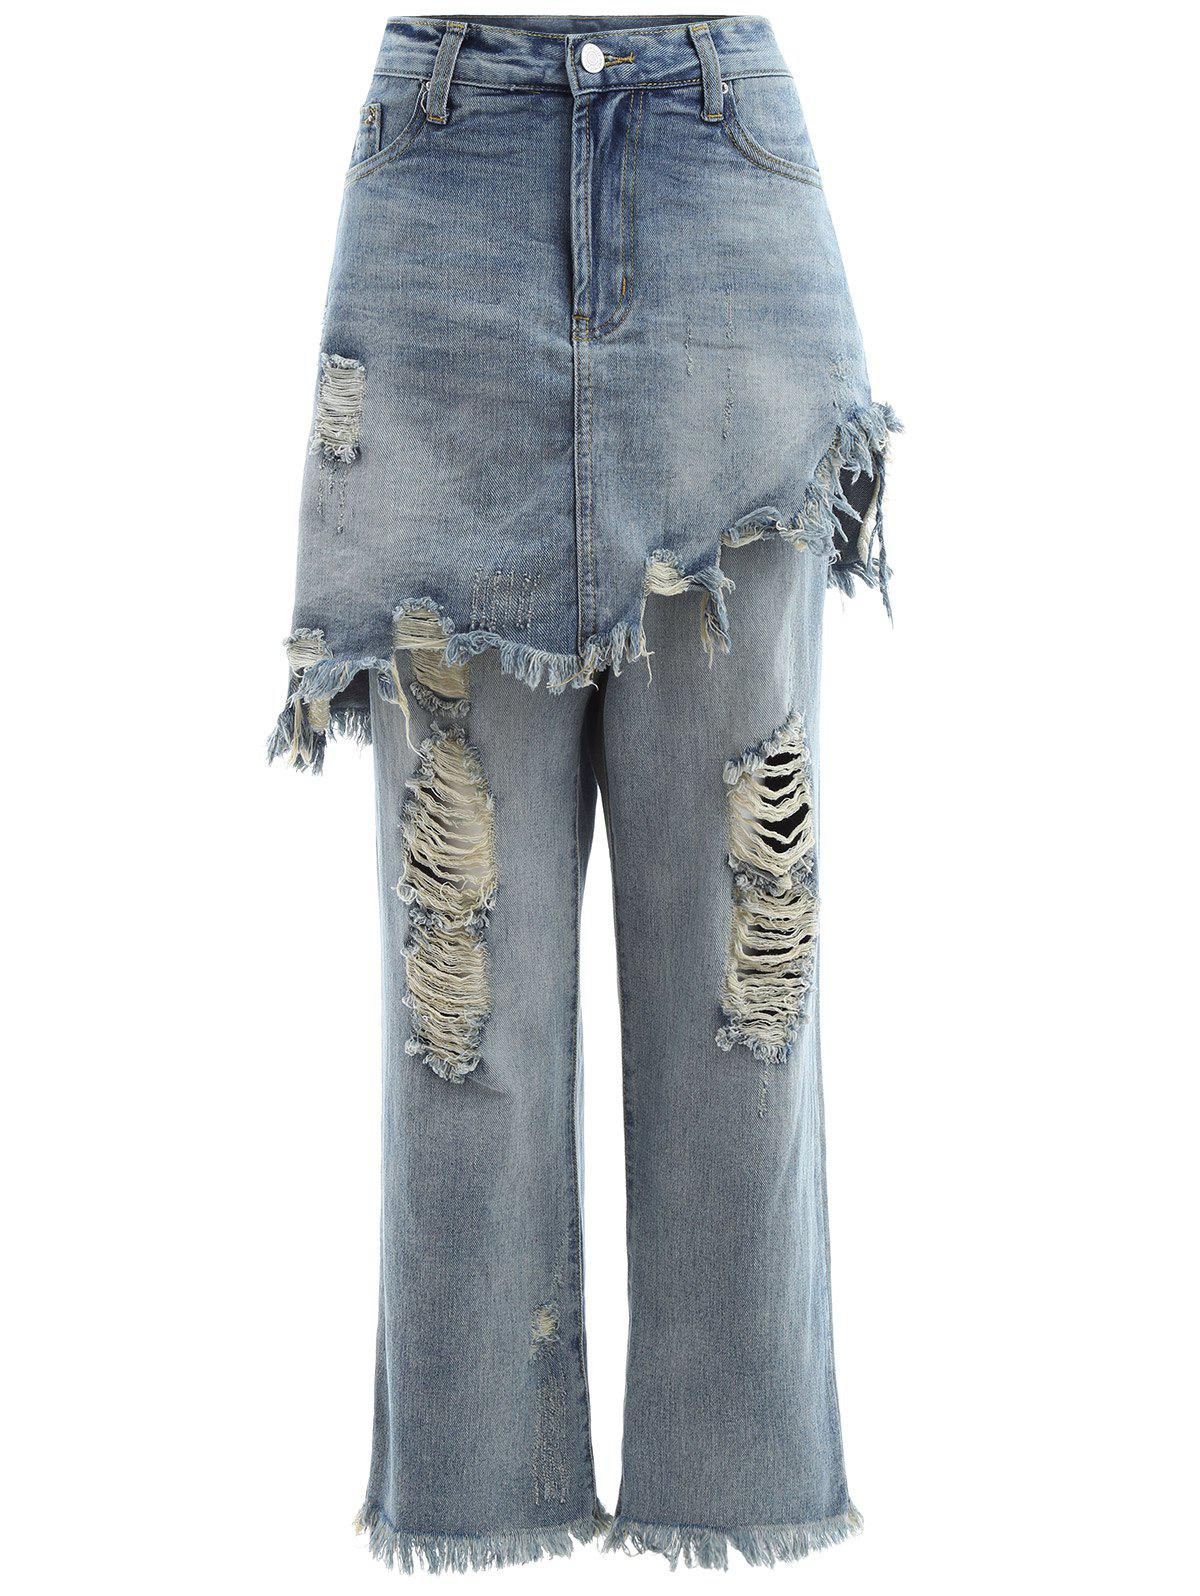 Frayed Ripped Skirted JeansWomen<br><br><br>Size: L<br>Color: LIGHT BLUE